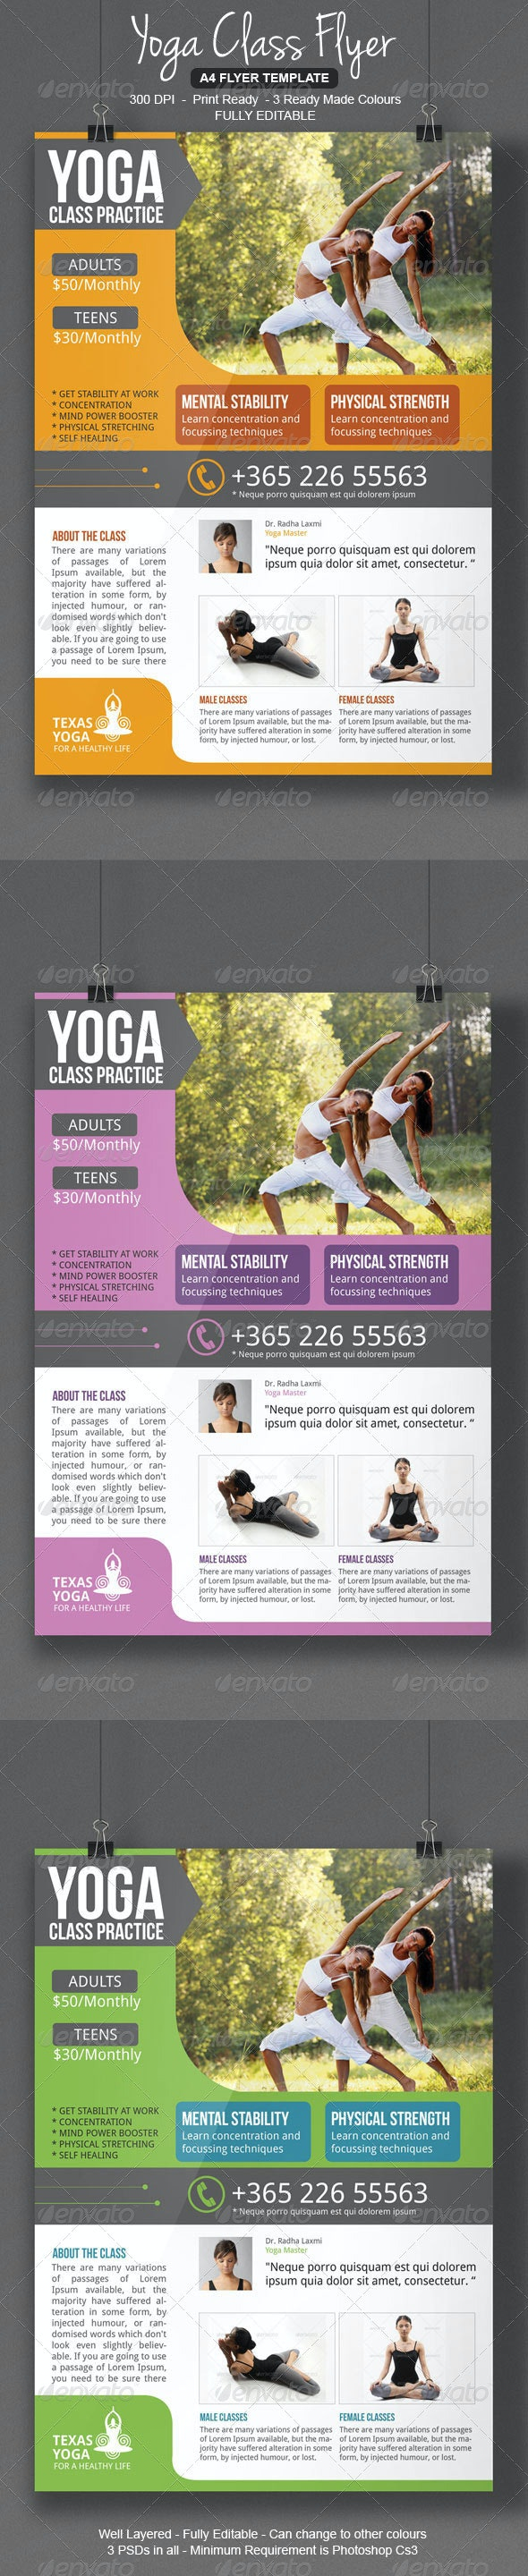 Yoga Class Flyer - Corporate Flyers